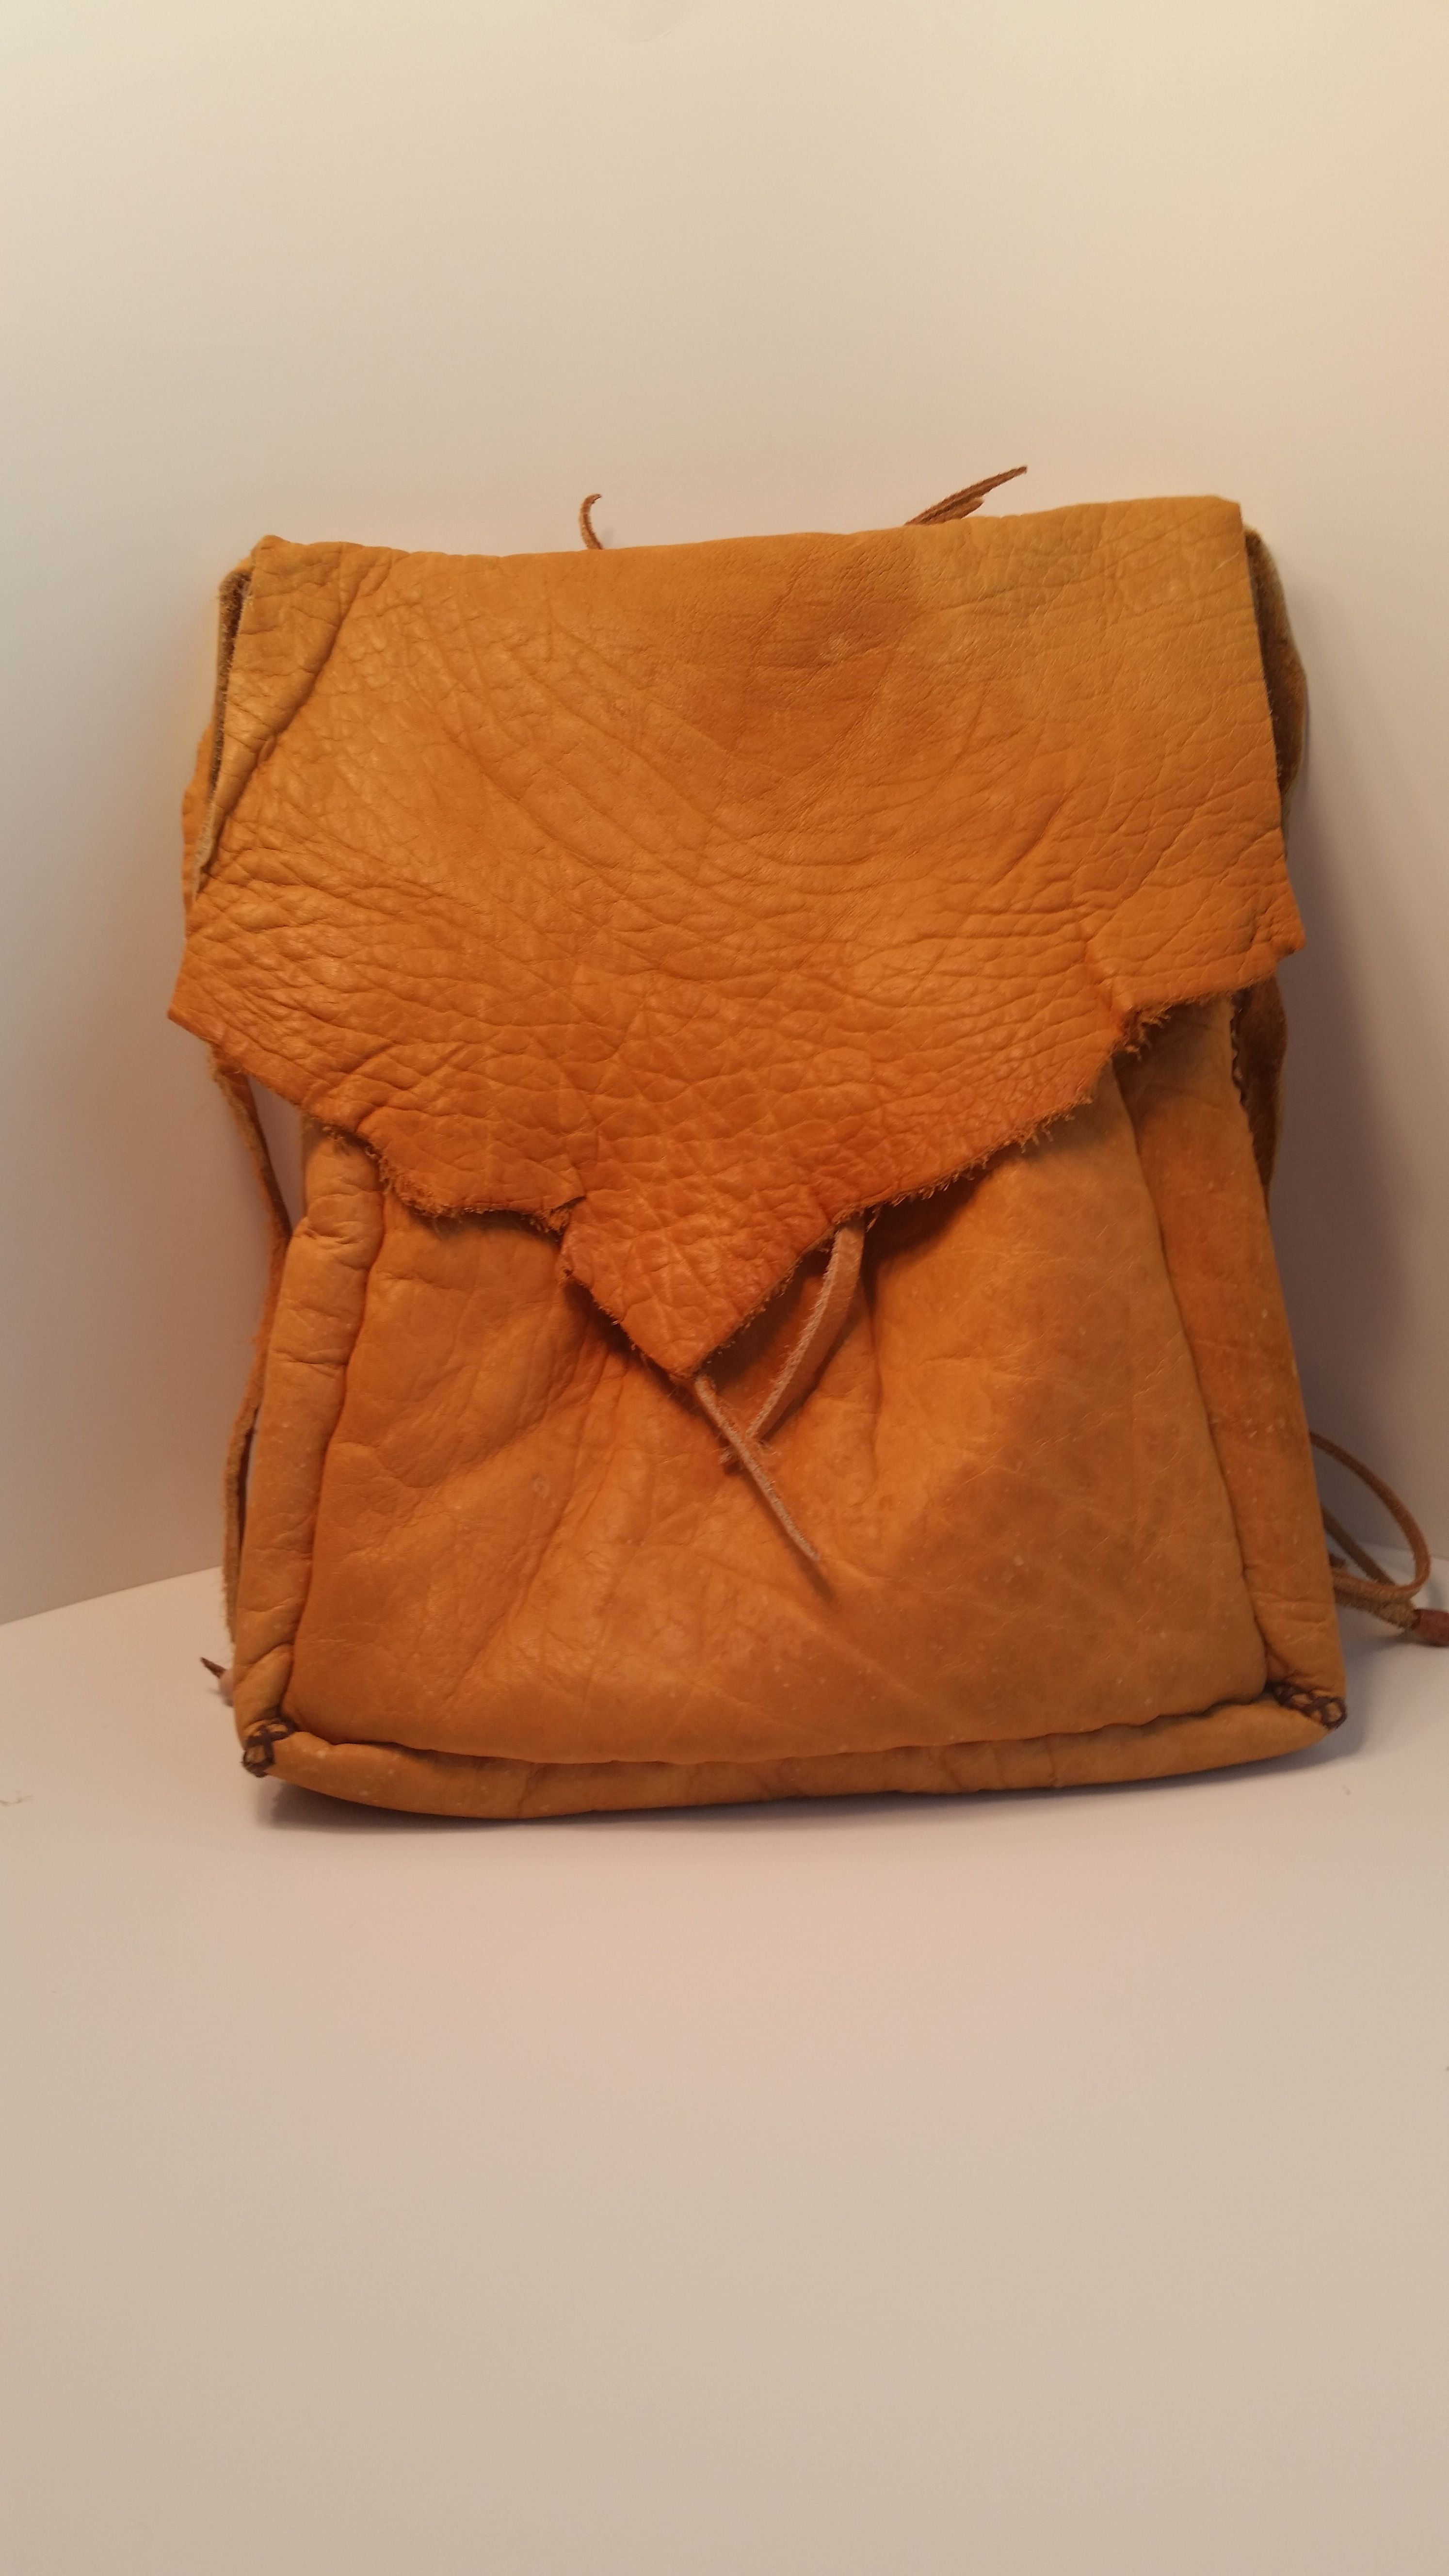 Deer skin backpack, with turquoise, bone and agate beads. Wood and leather suede straps. Handmade with love.